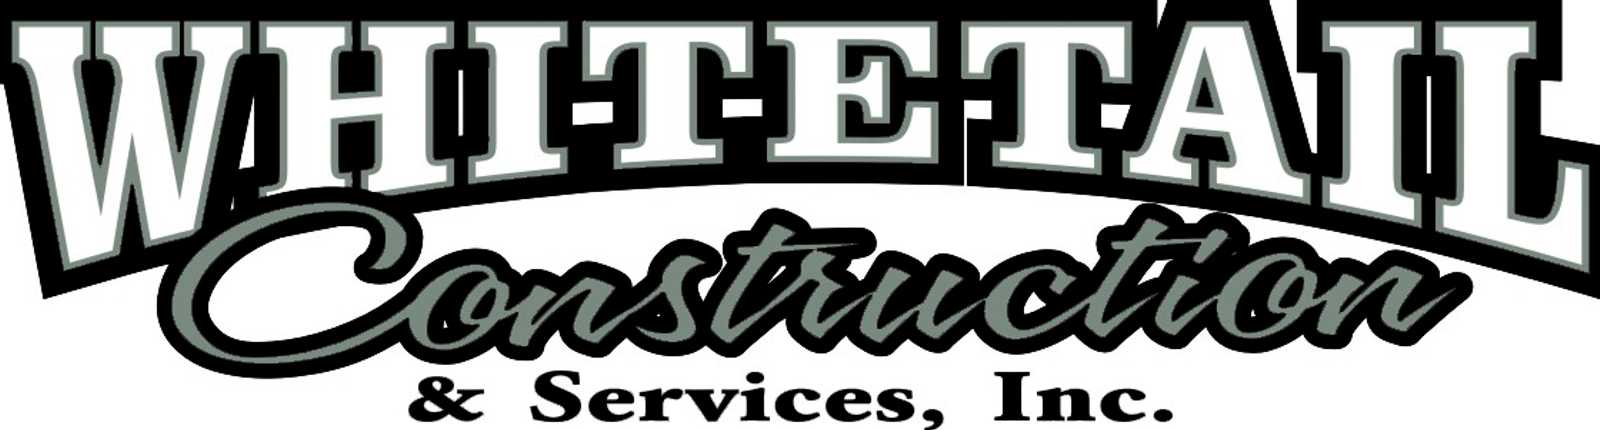 Whitetail Construction & Services, Inc header image